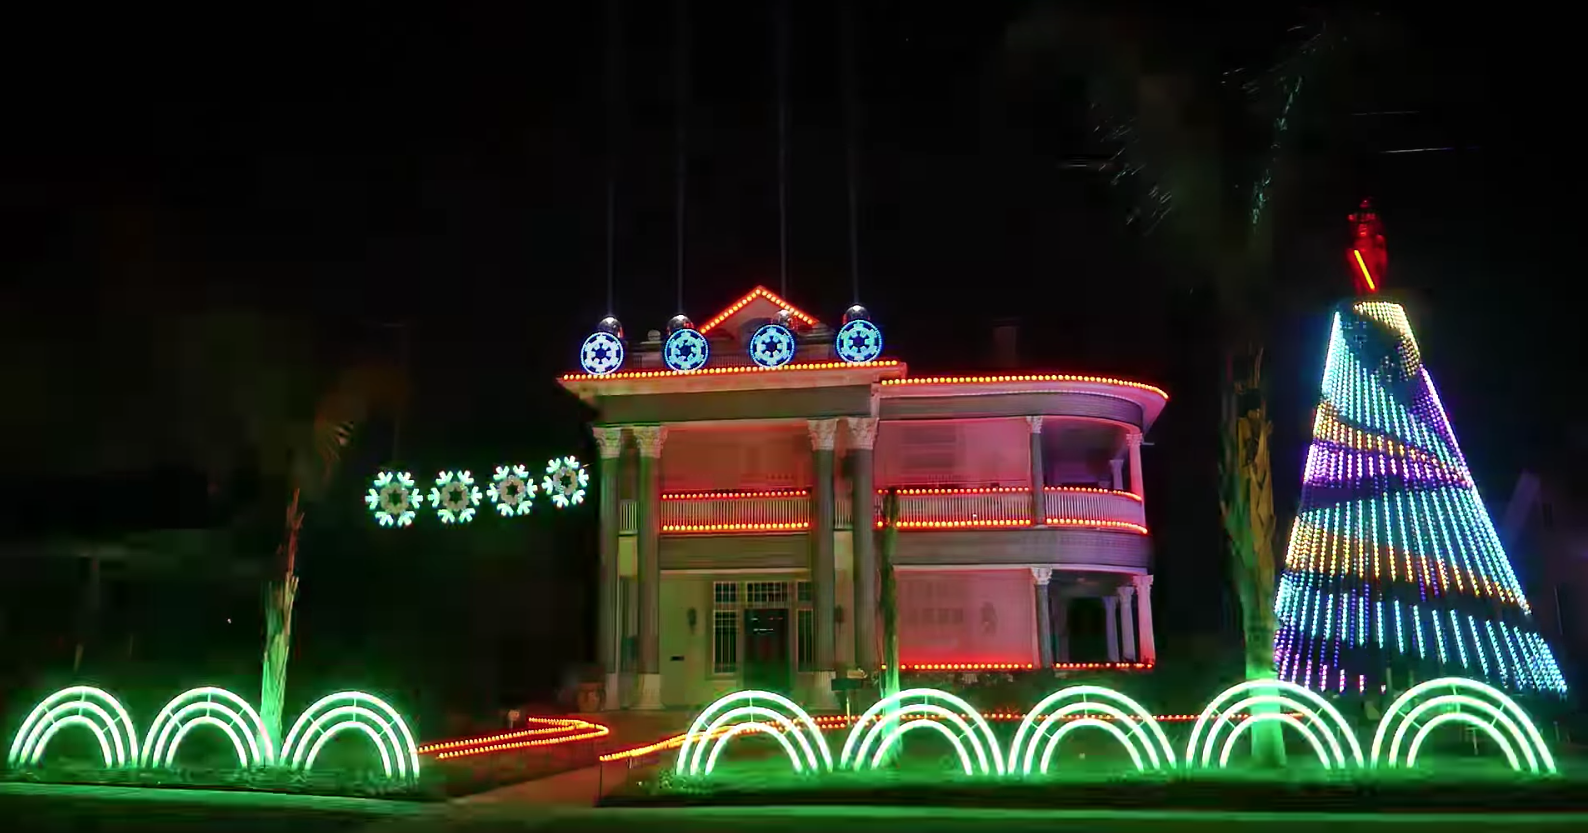 check out this san antonio homes star wars inspired christmas light show artslut - Windcrest Christmas Lights